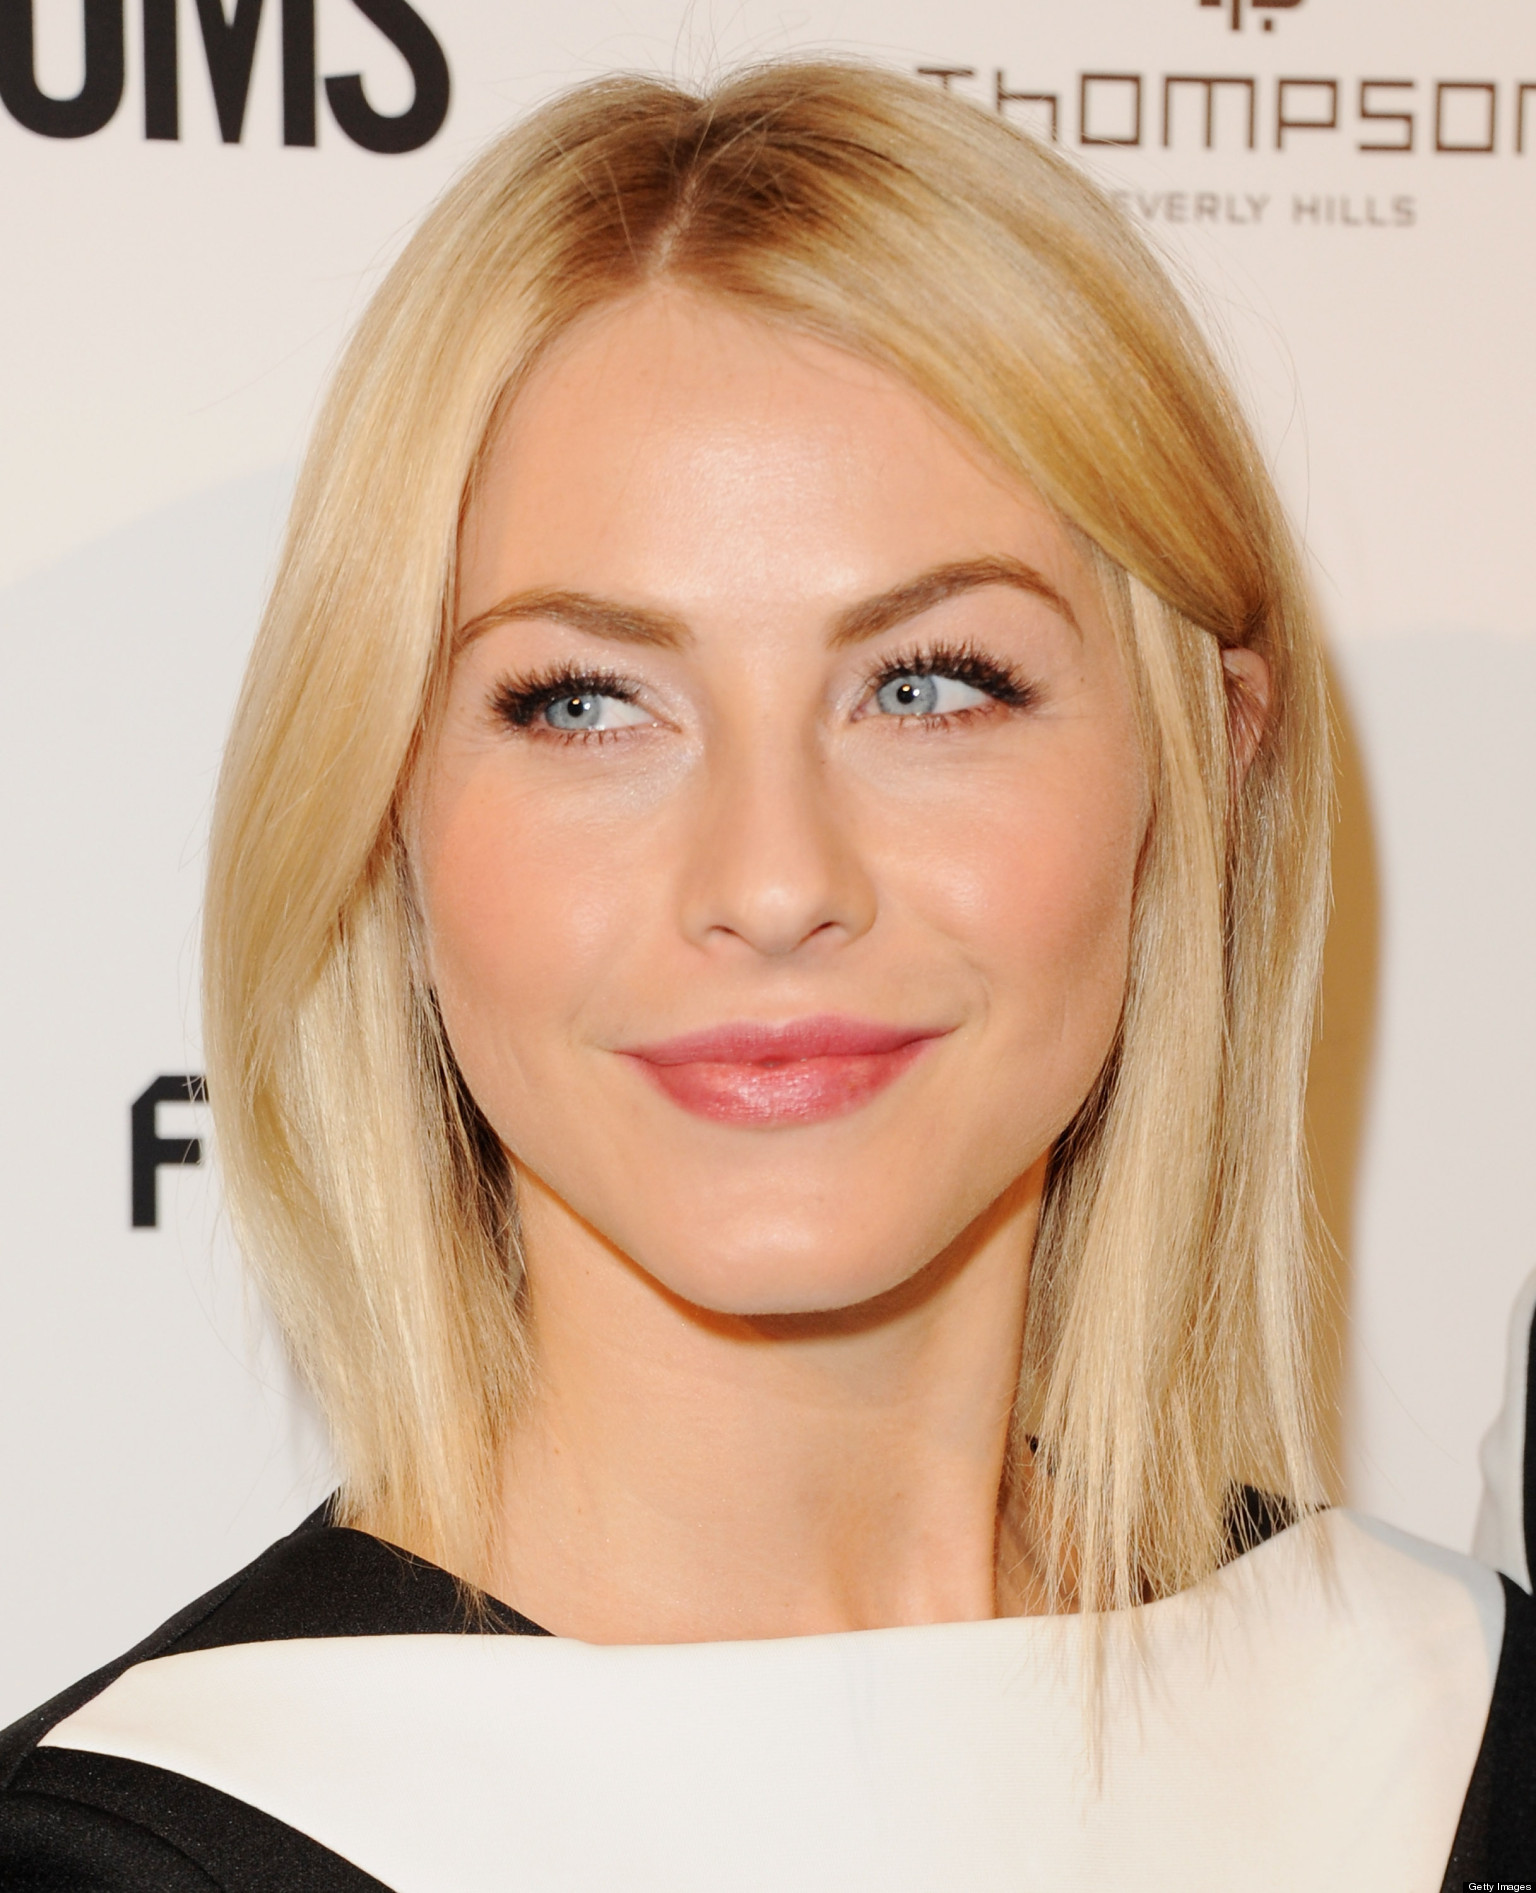 Julianne Hough S Mystery Man Actress Reportedly On The